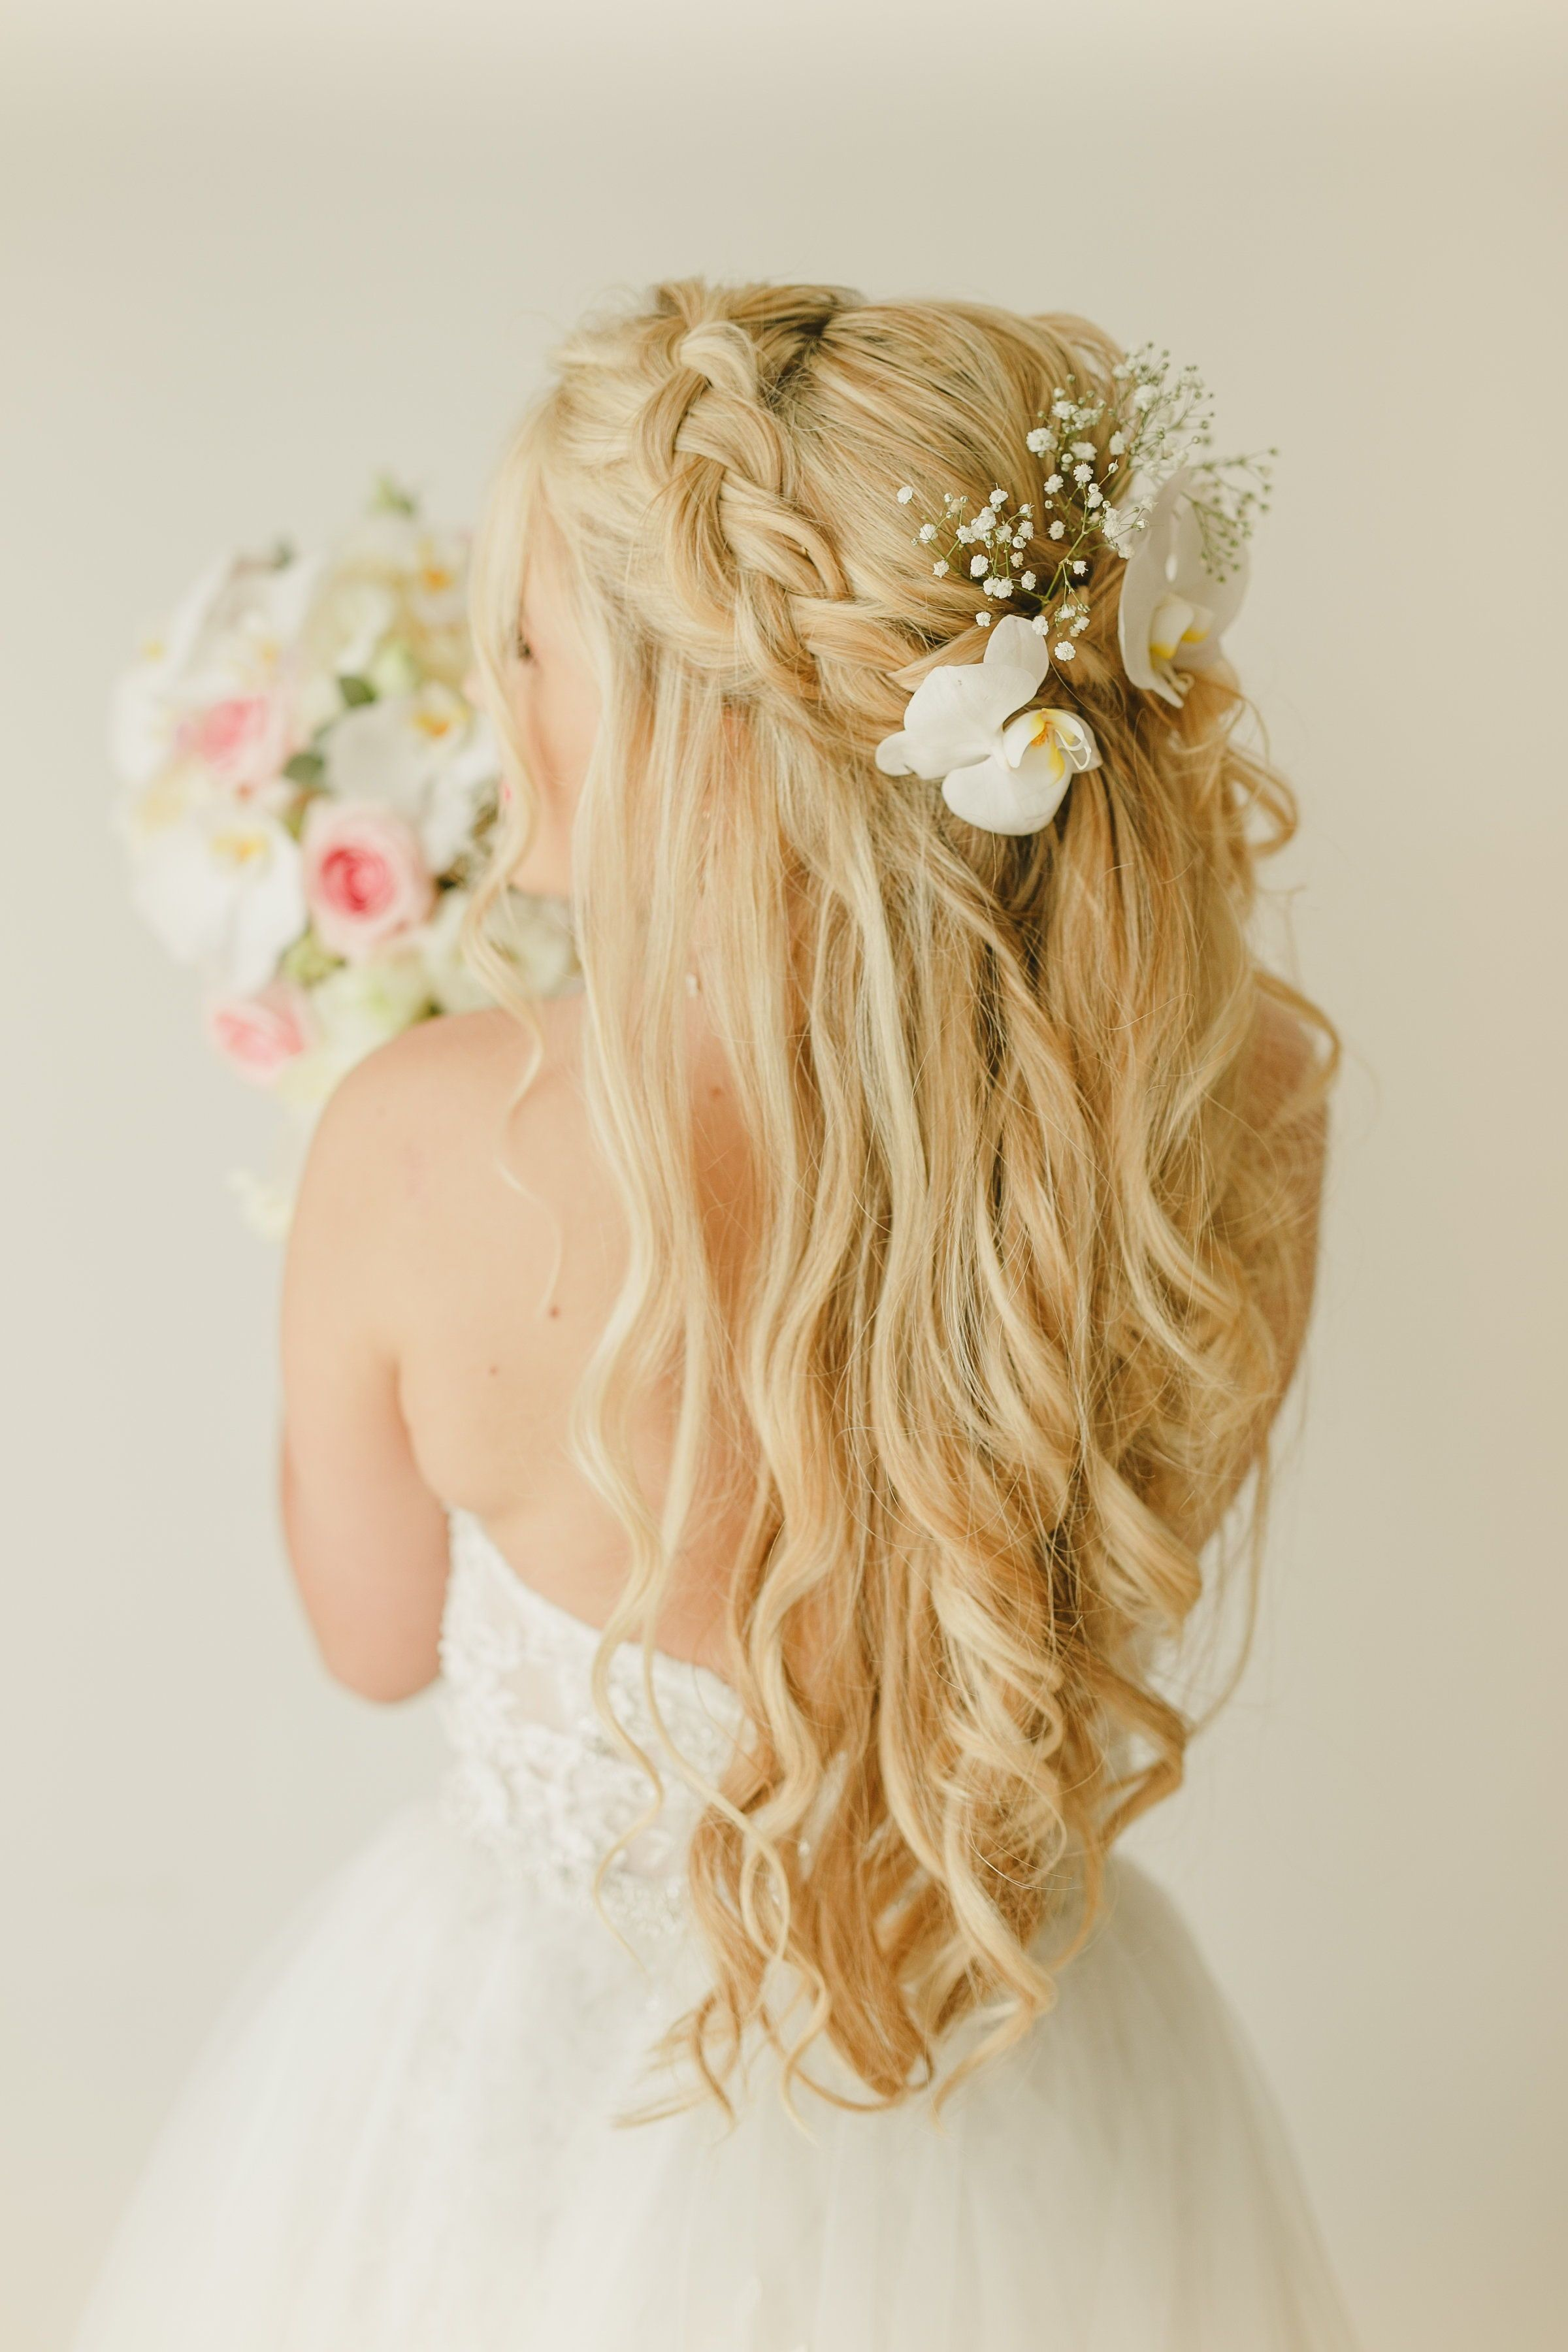 Wedding Hair Down Ideas For Long Hair Bridal Hair Down With Curls